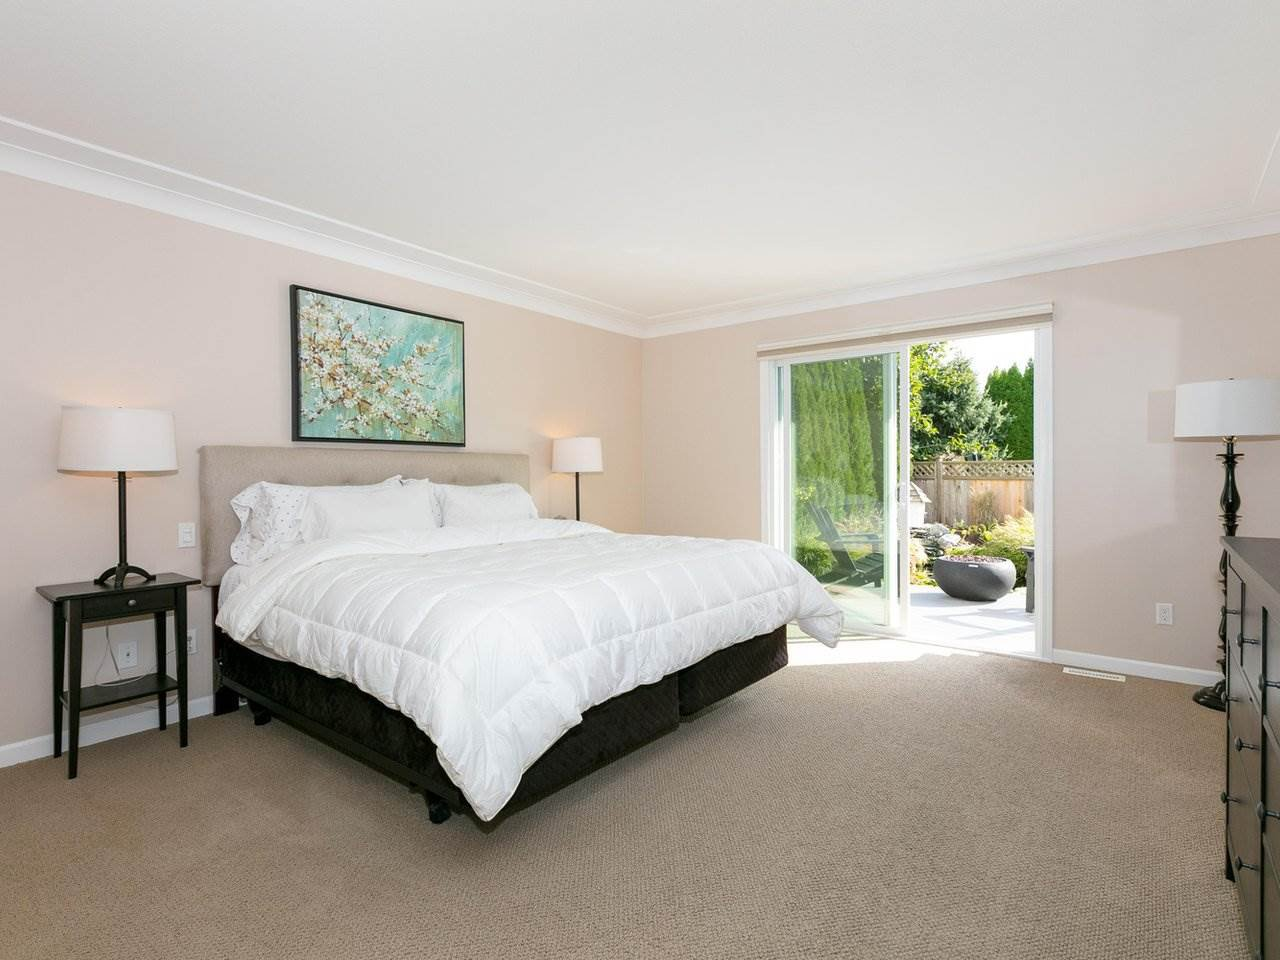 Photo 13: Photos: 19645 SOMERSET Drive in Pitt Meadows: Mid Meadows House for sale : MLS®# R2505880